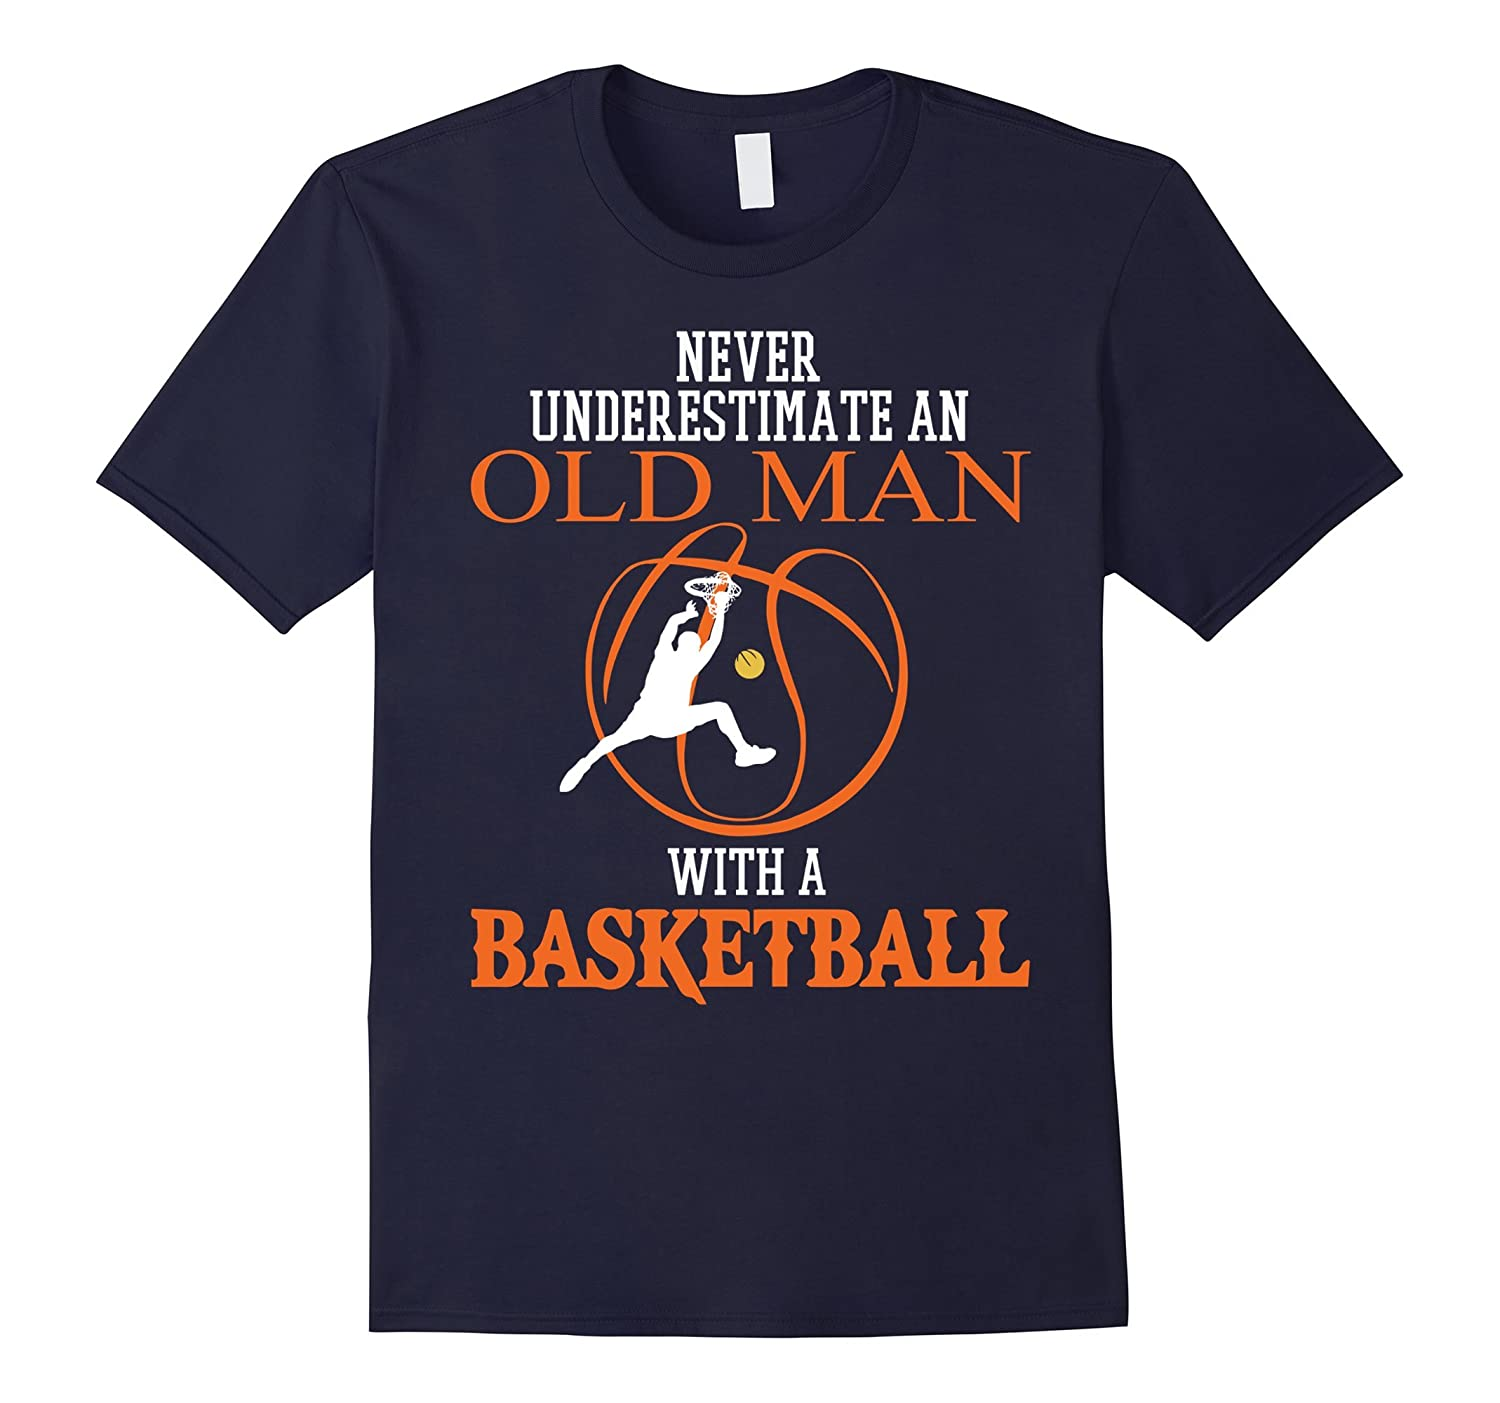 Never Underestimate An Old Man with Basketball T-Shirt